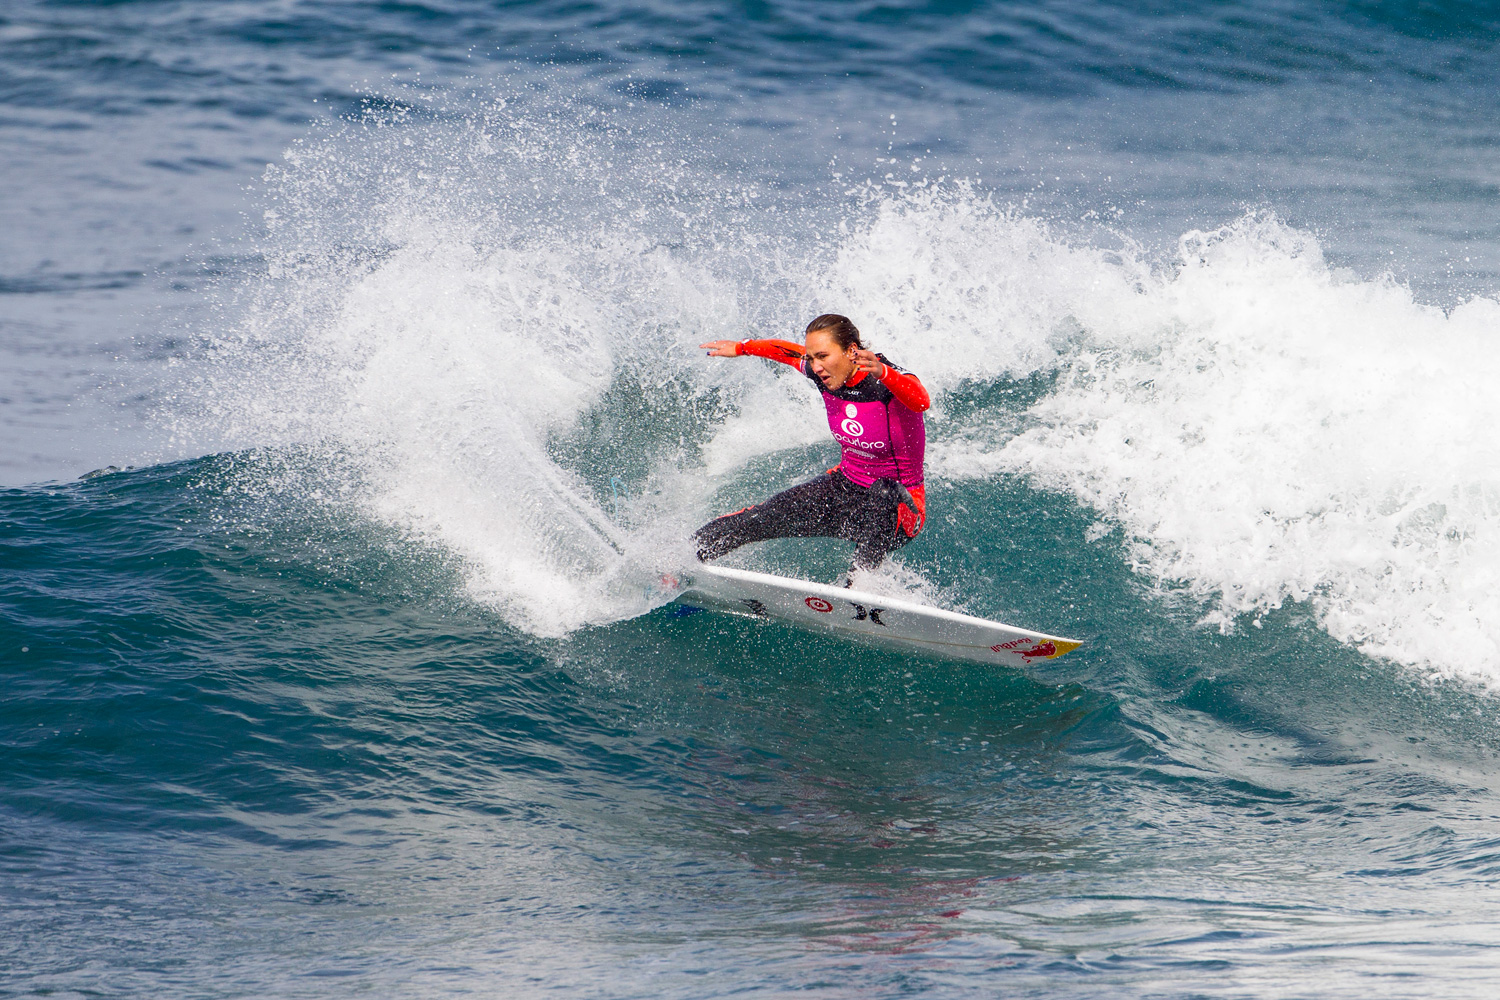 Carissa Moore of Hawaii surfs during Round 1.